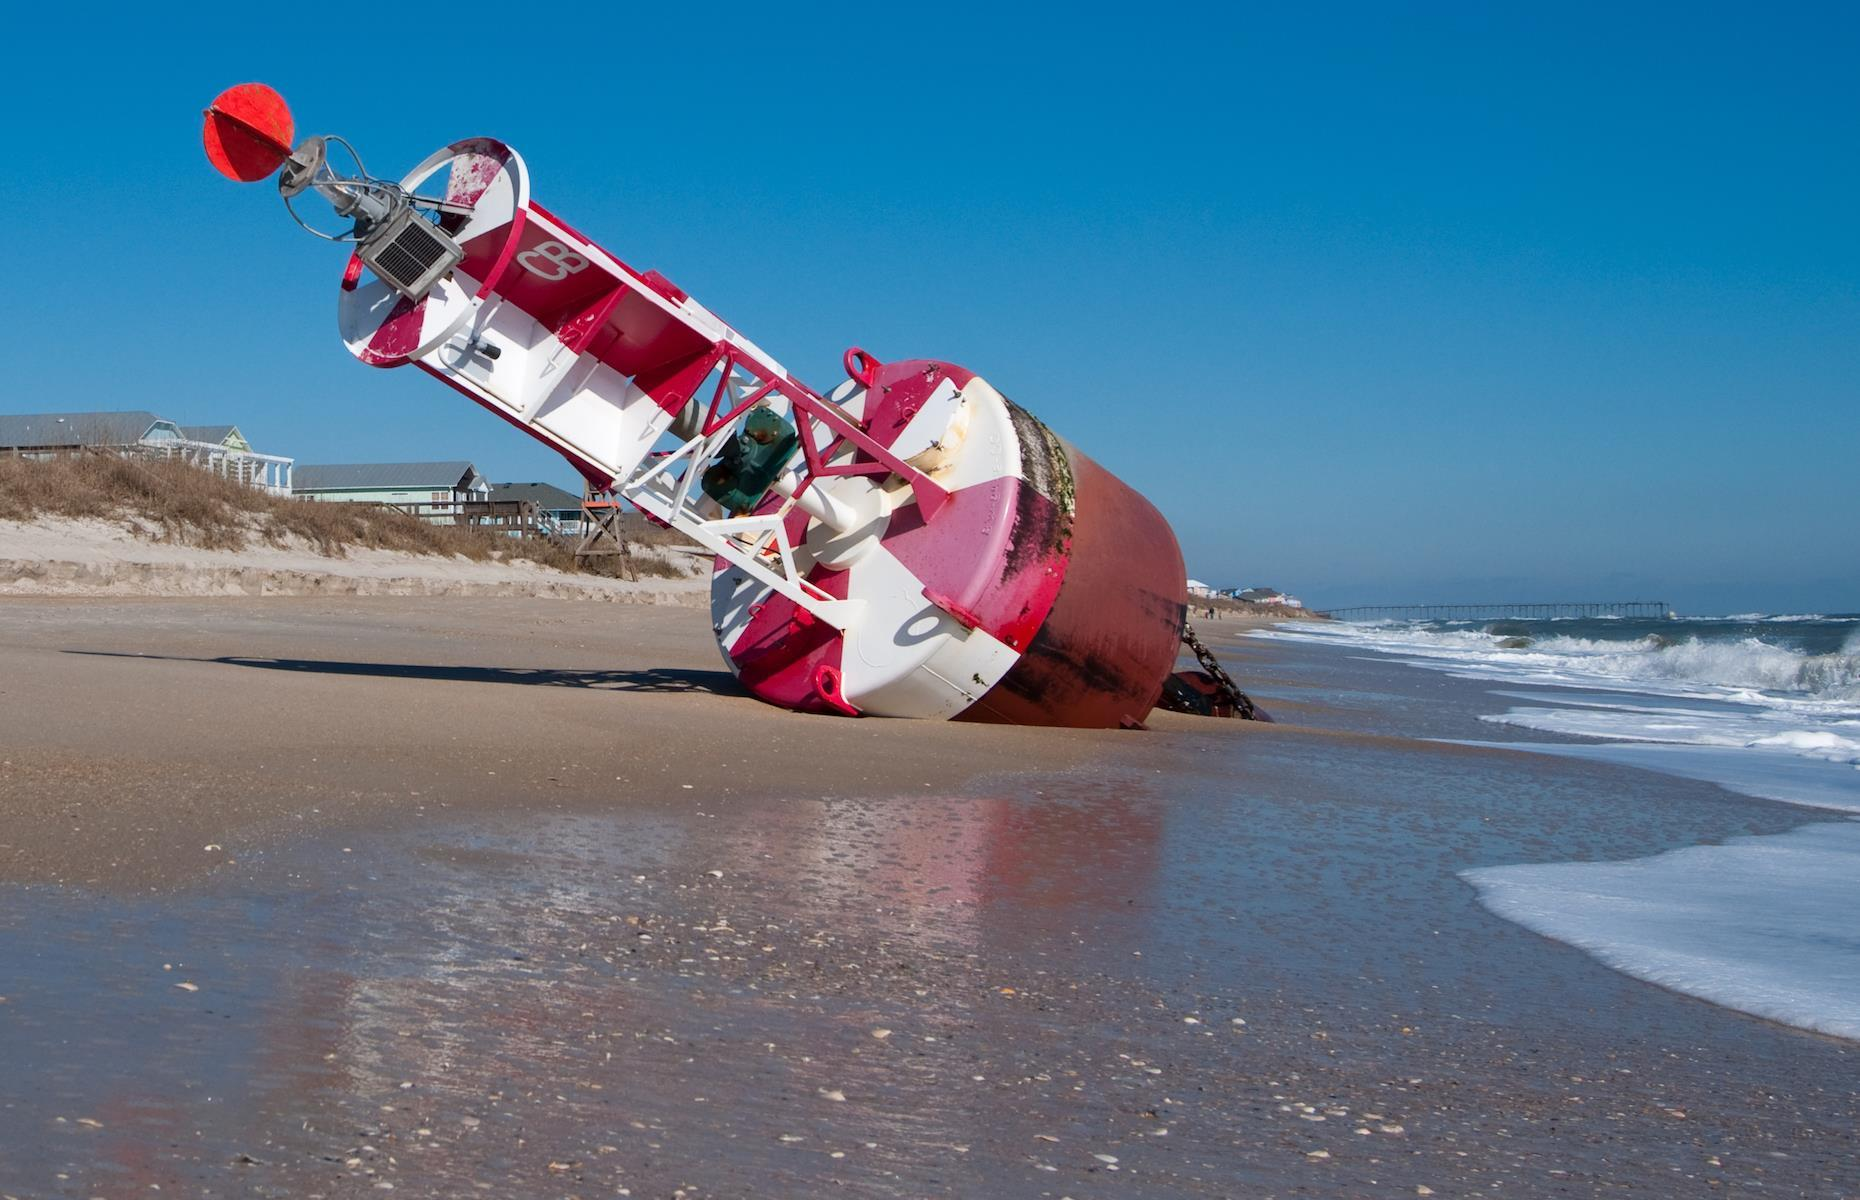 Slide 17 of 33: A large red buoy was spotted lying on its side by walkers on a stretch of shore between South Forest and Coligny beaches in the island of Hilton Head in South Carolina in September 2017. The US Coast Guard buoy was washed ashore during Tropical Storm Irma – it was later identified as Buoy No. 8 and had been carried about eight nautical miles (15km) to the beach by strong waves.